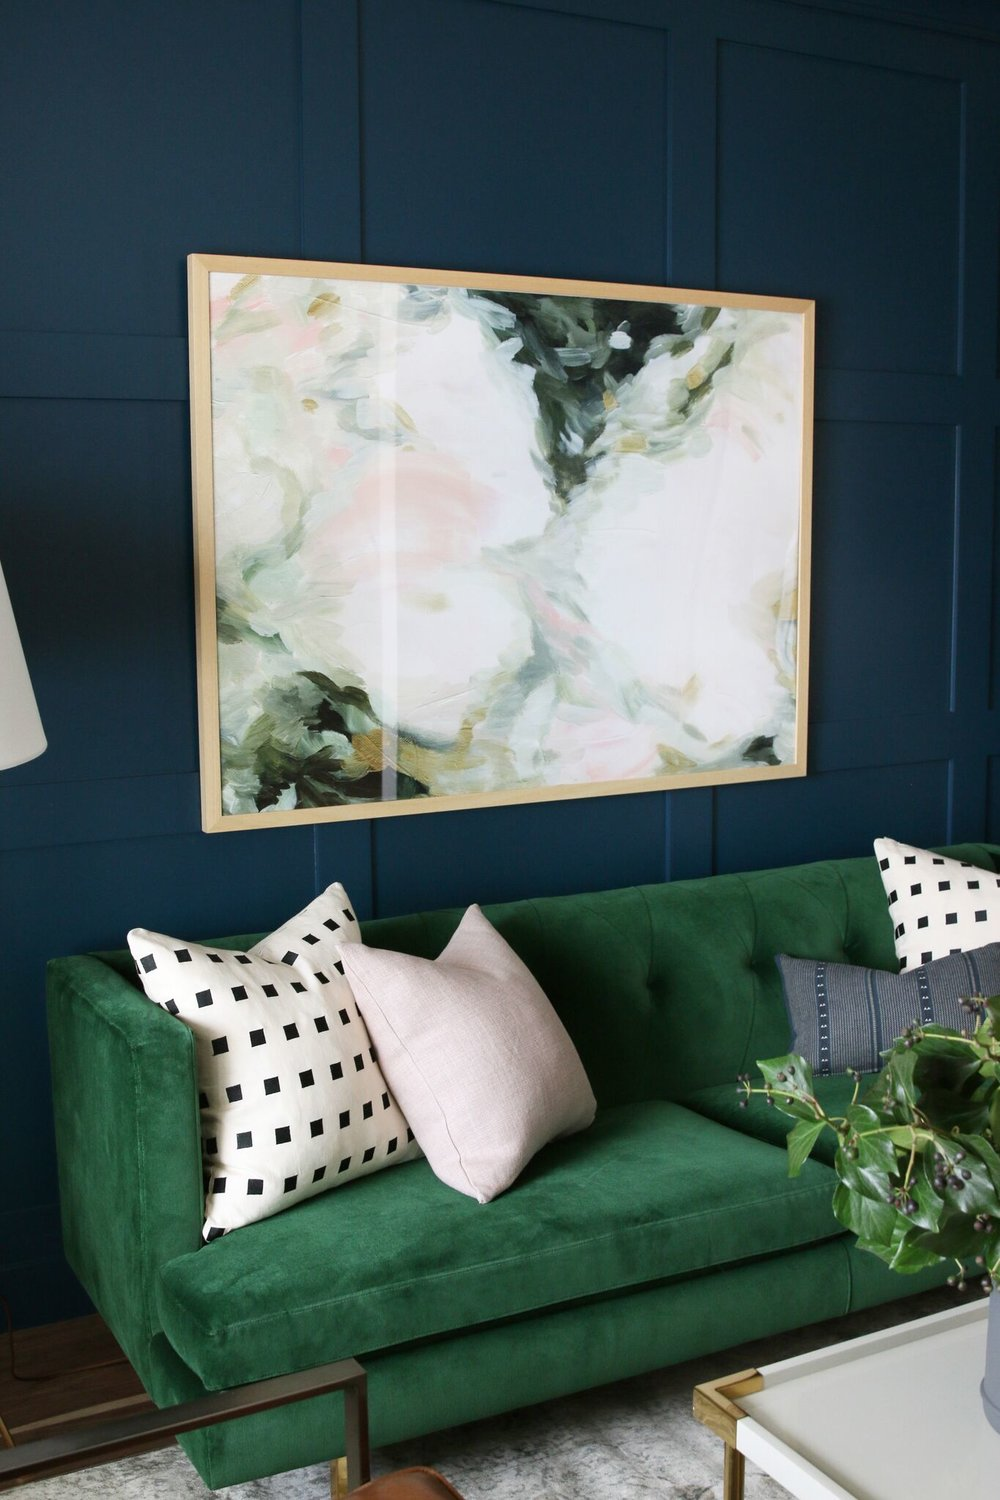 Green couch with decorative pillows